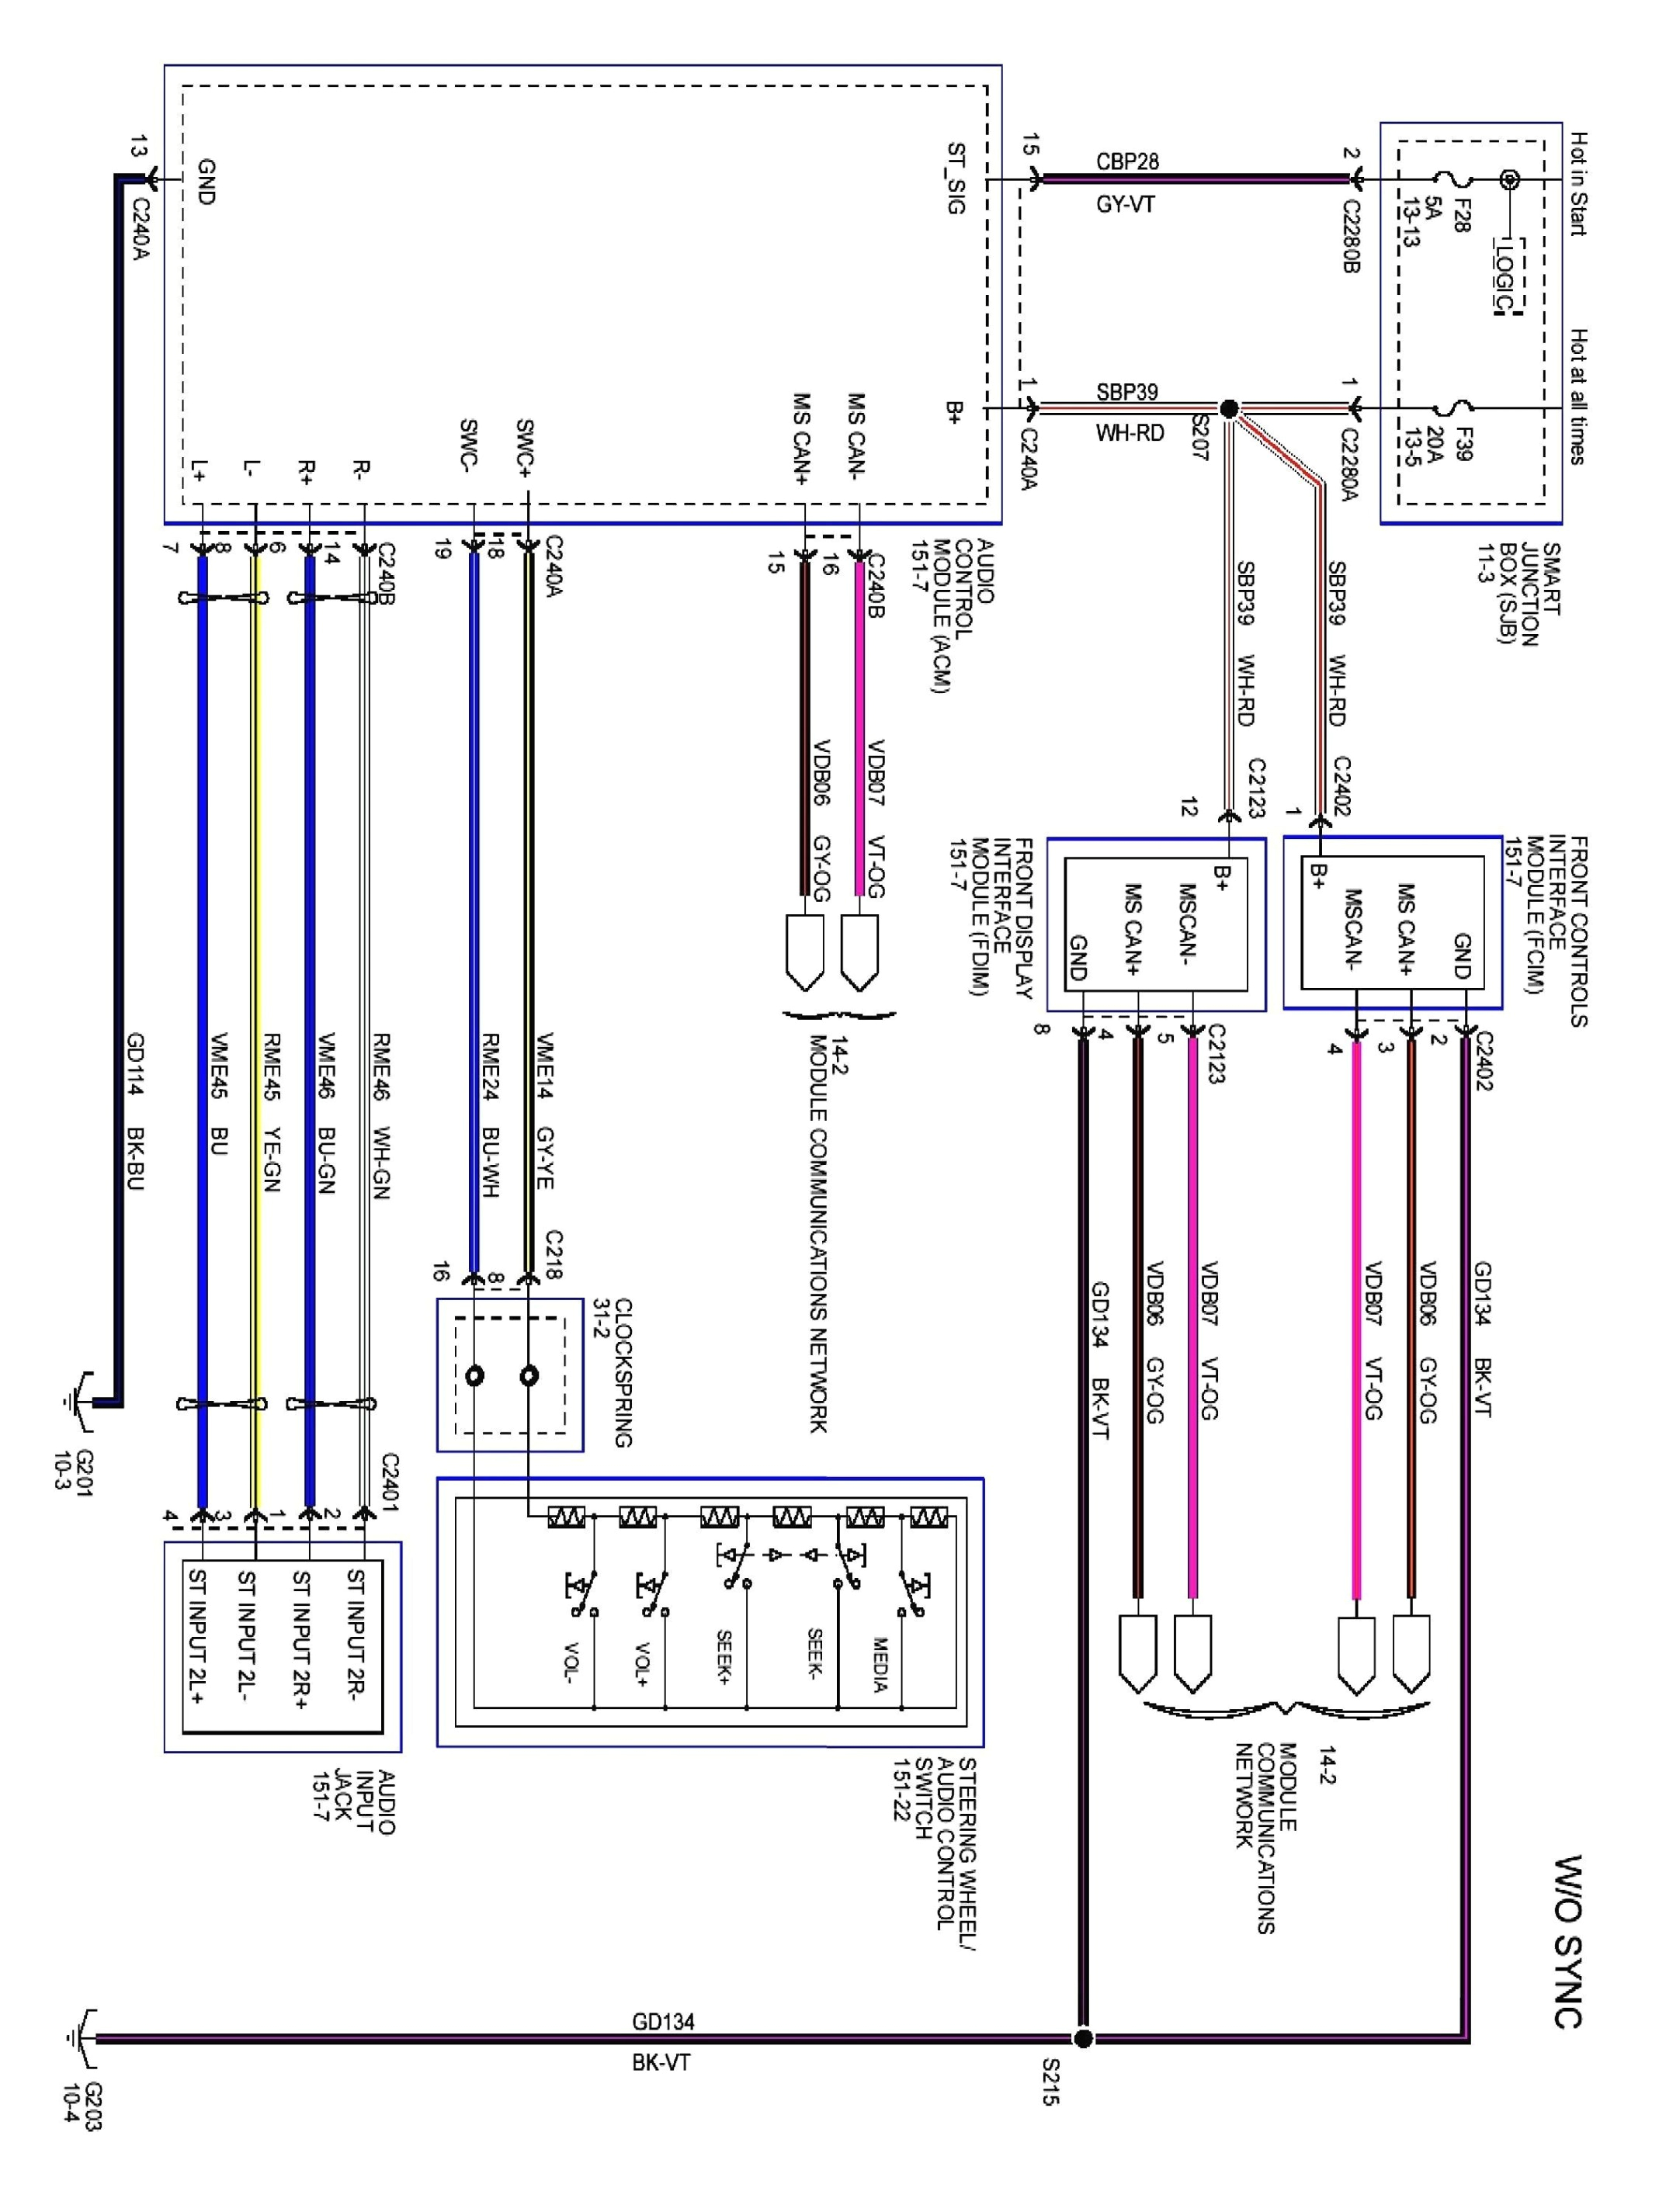 Bmw Wiring Diagrams Bmw E83 Wiring Diagram Wiring Diagram Operations